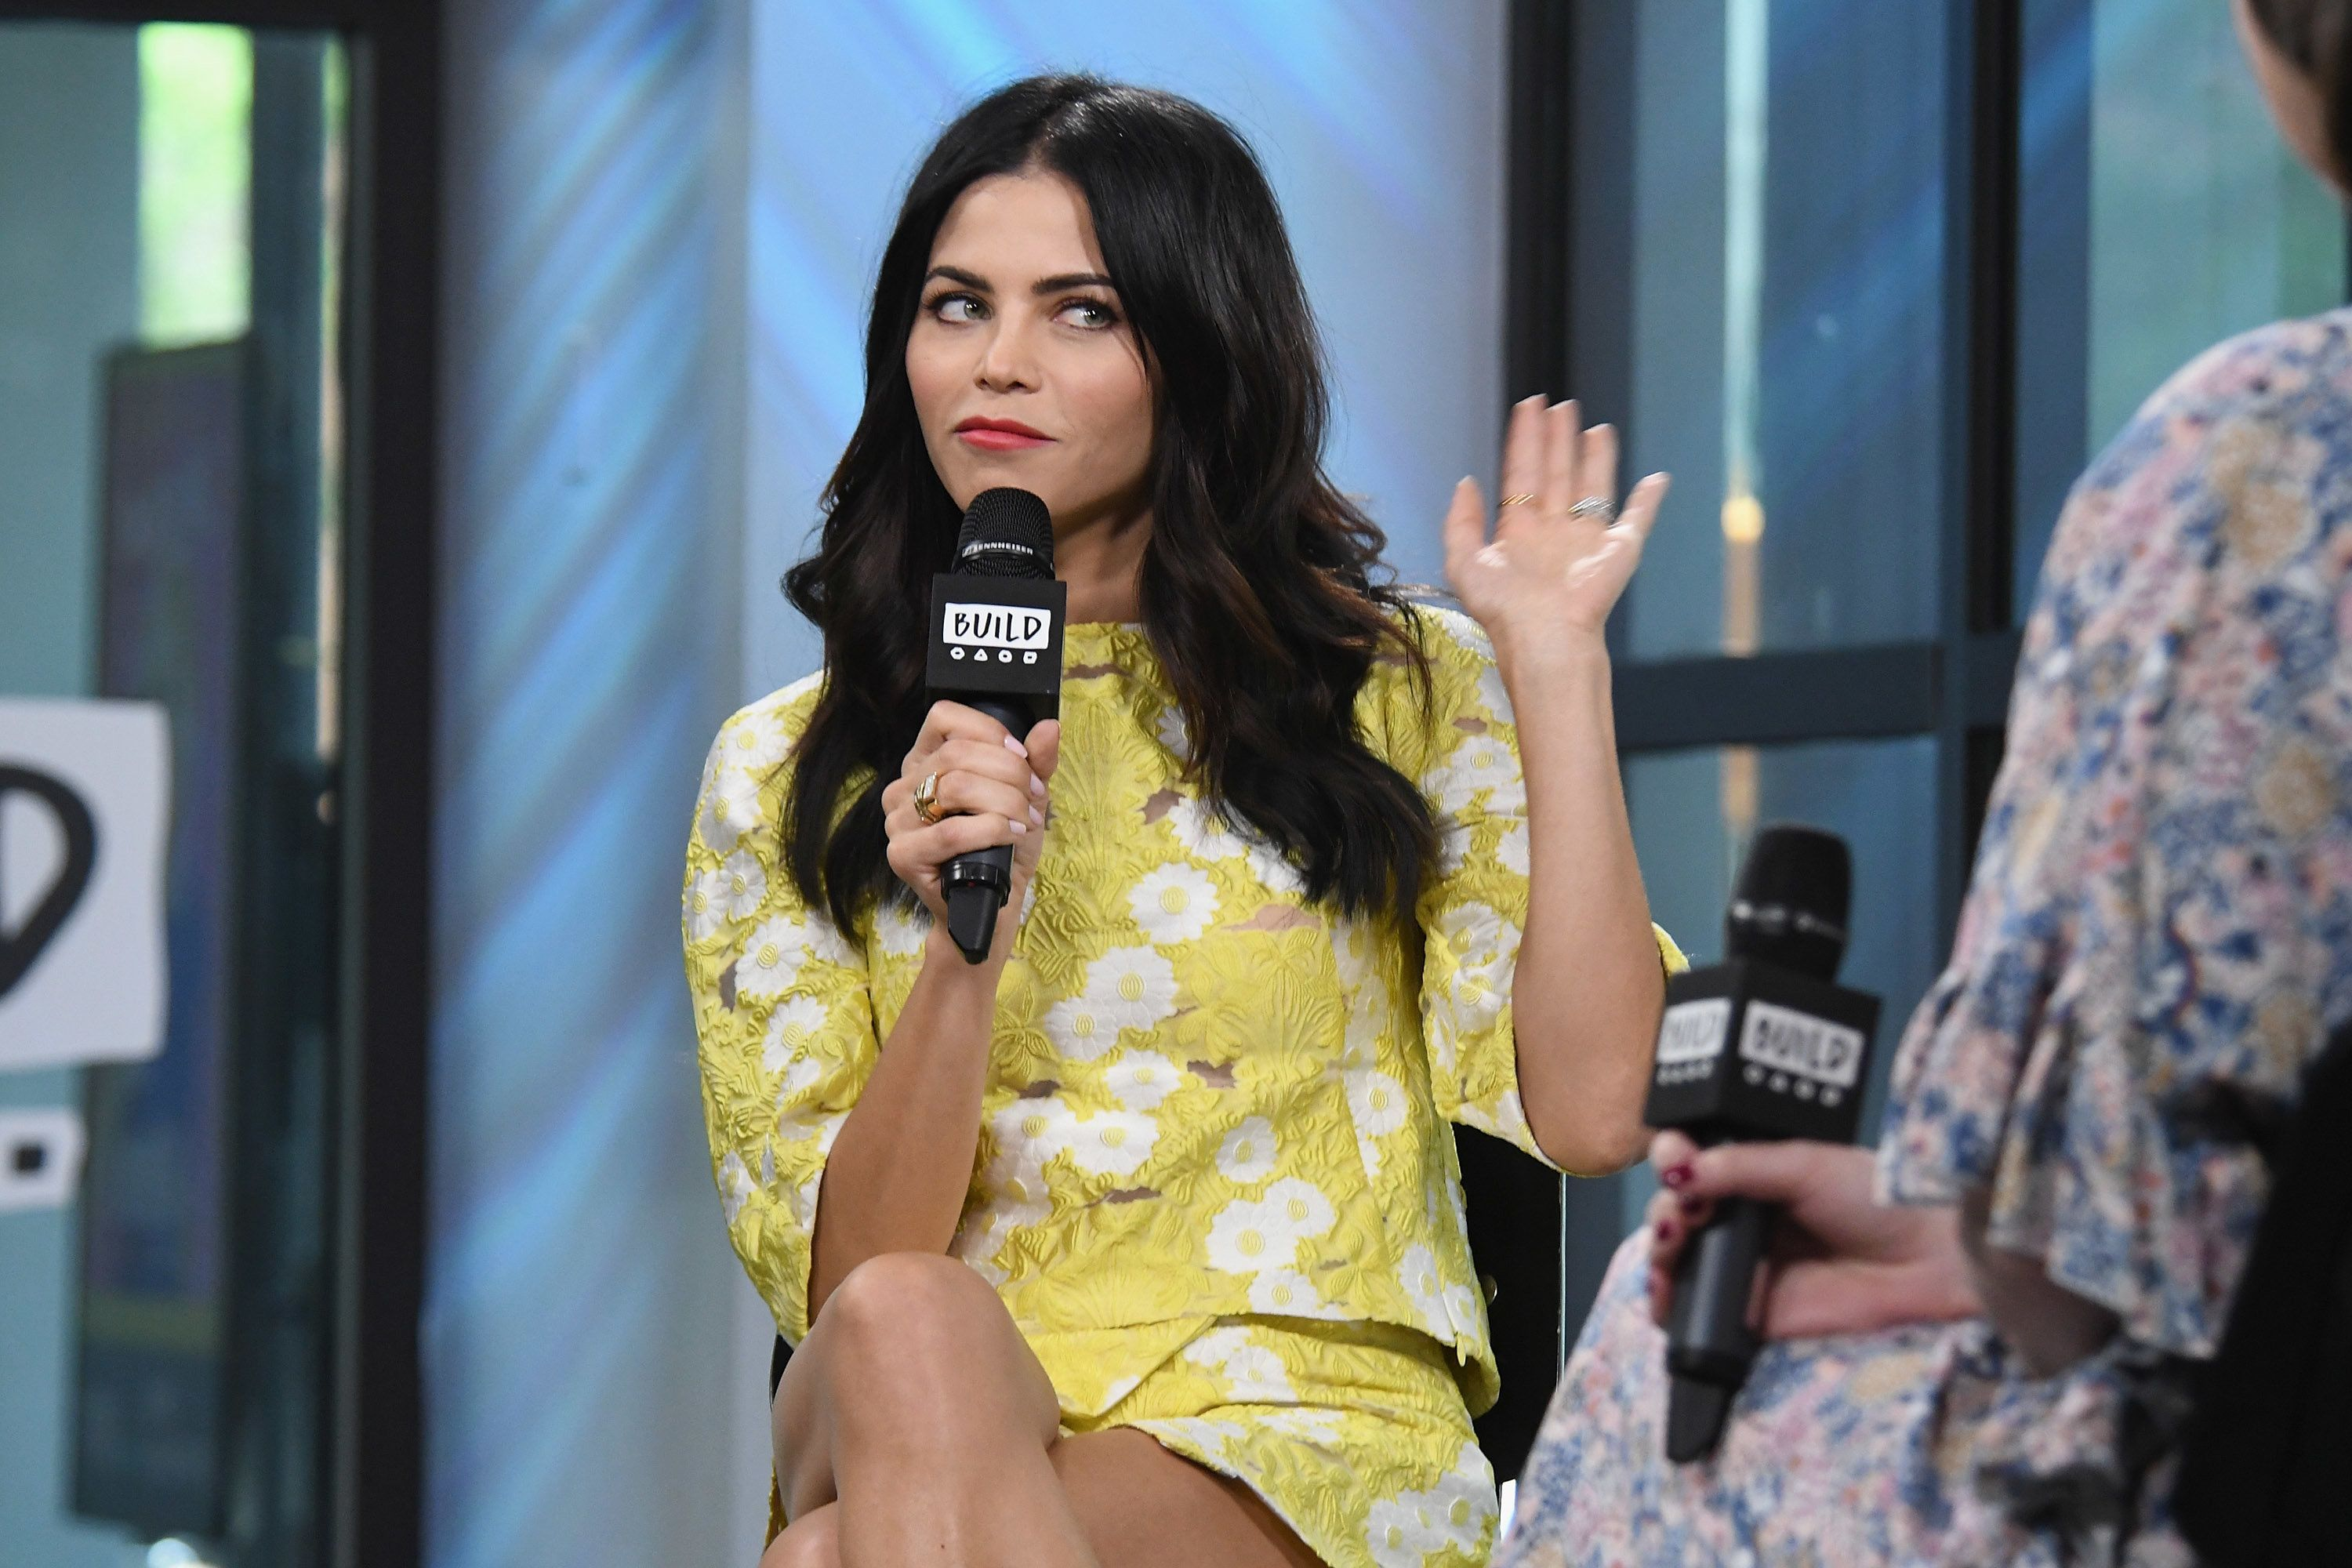 NEW YORK, NY - MAY 12:  Jenna Dewan Tatum visits Build Series to discuss her role as host and mentor in the dance competition series 'World of Dance' at Build Studio on May 12, 2017 in New York City.  (Photo by Gary Gershoff/WireImage)